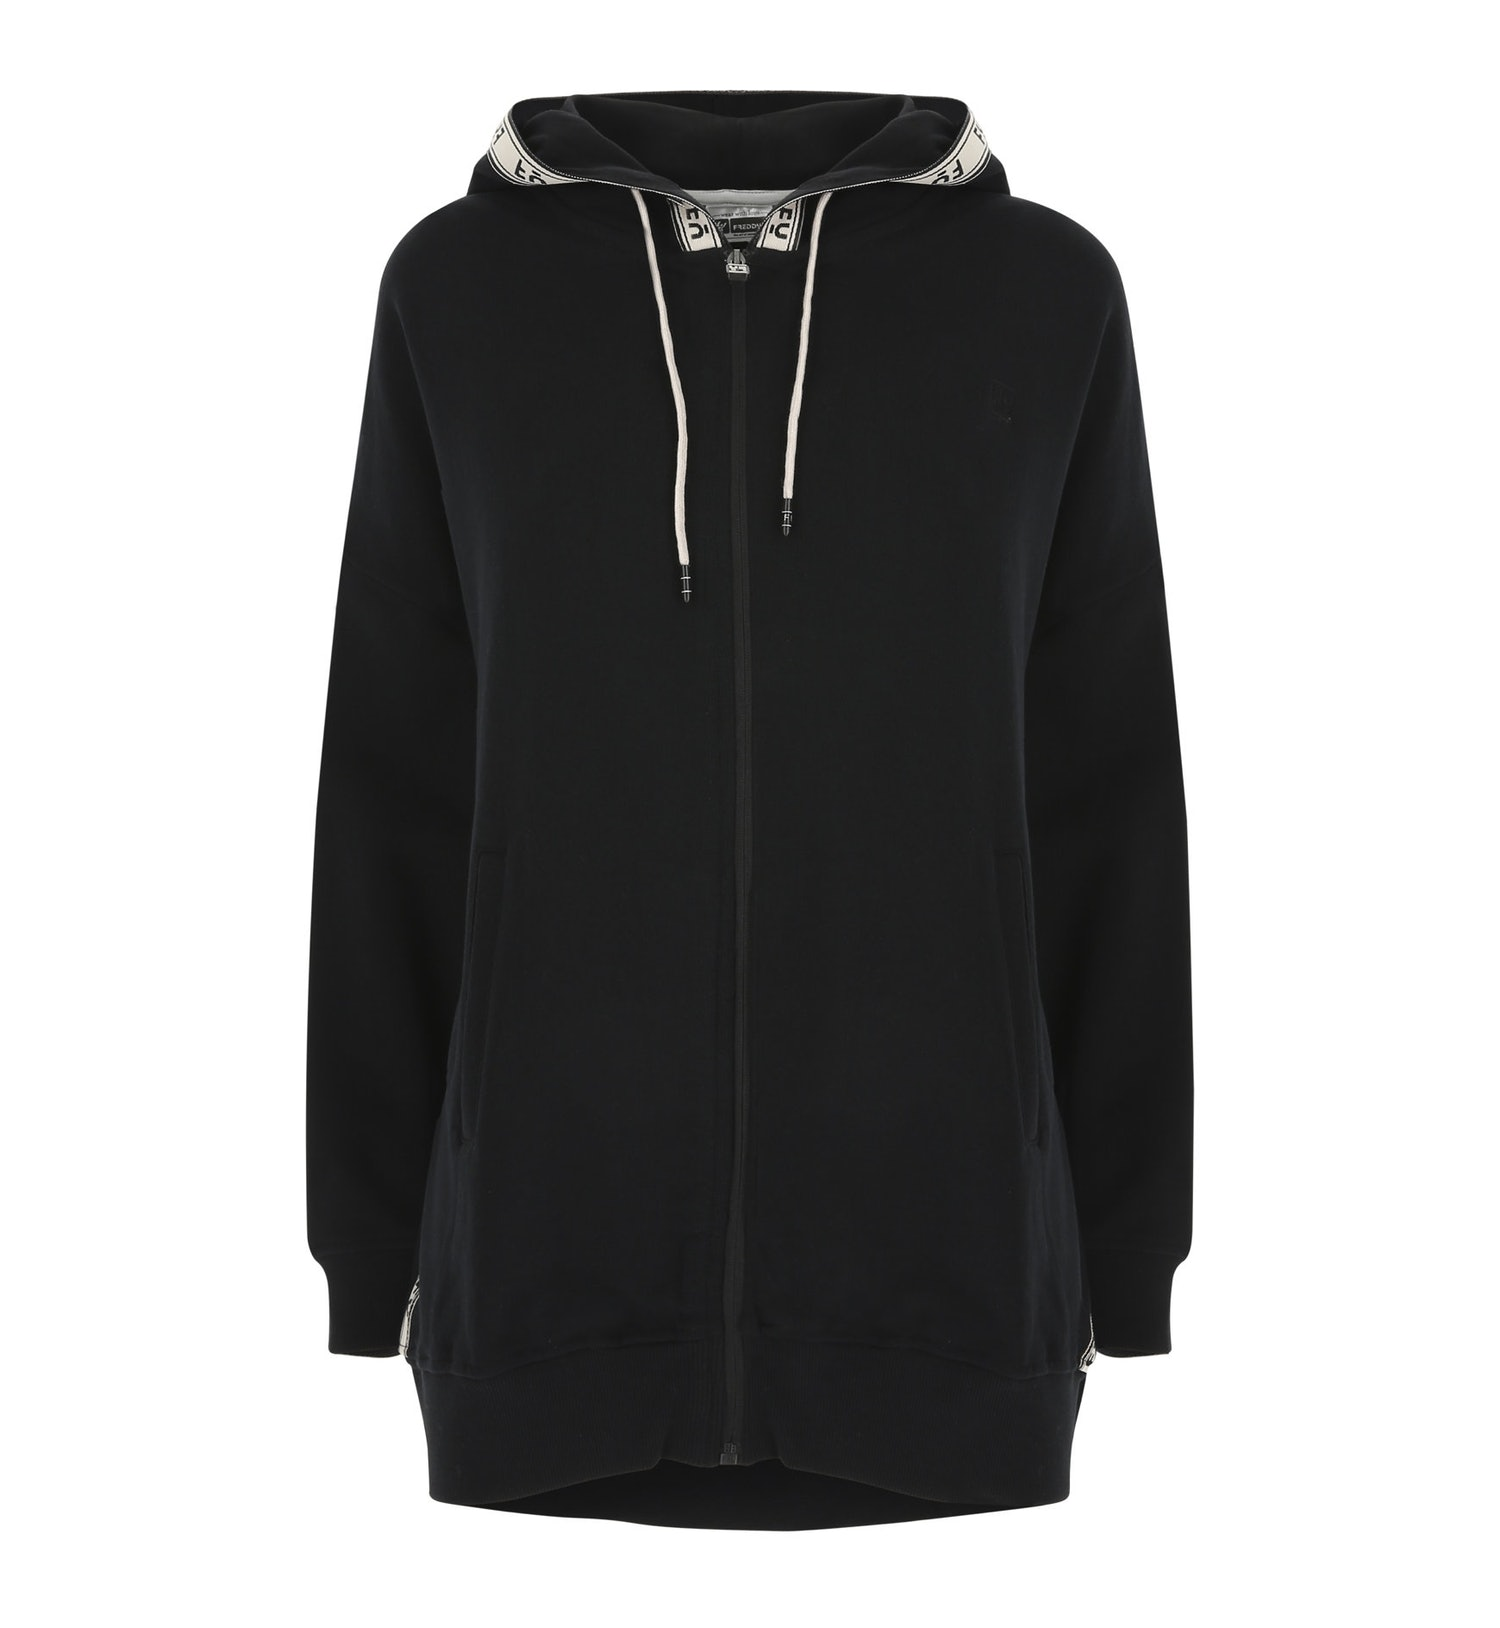 Freddy Hoodie History - giacca fitness - donna